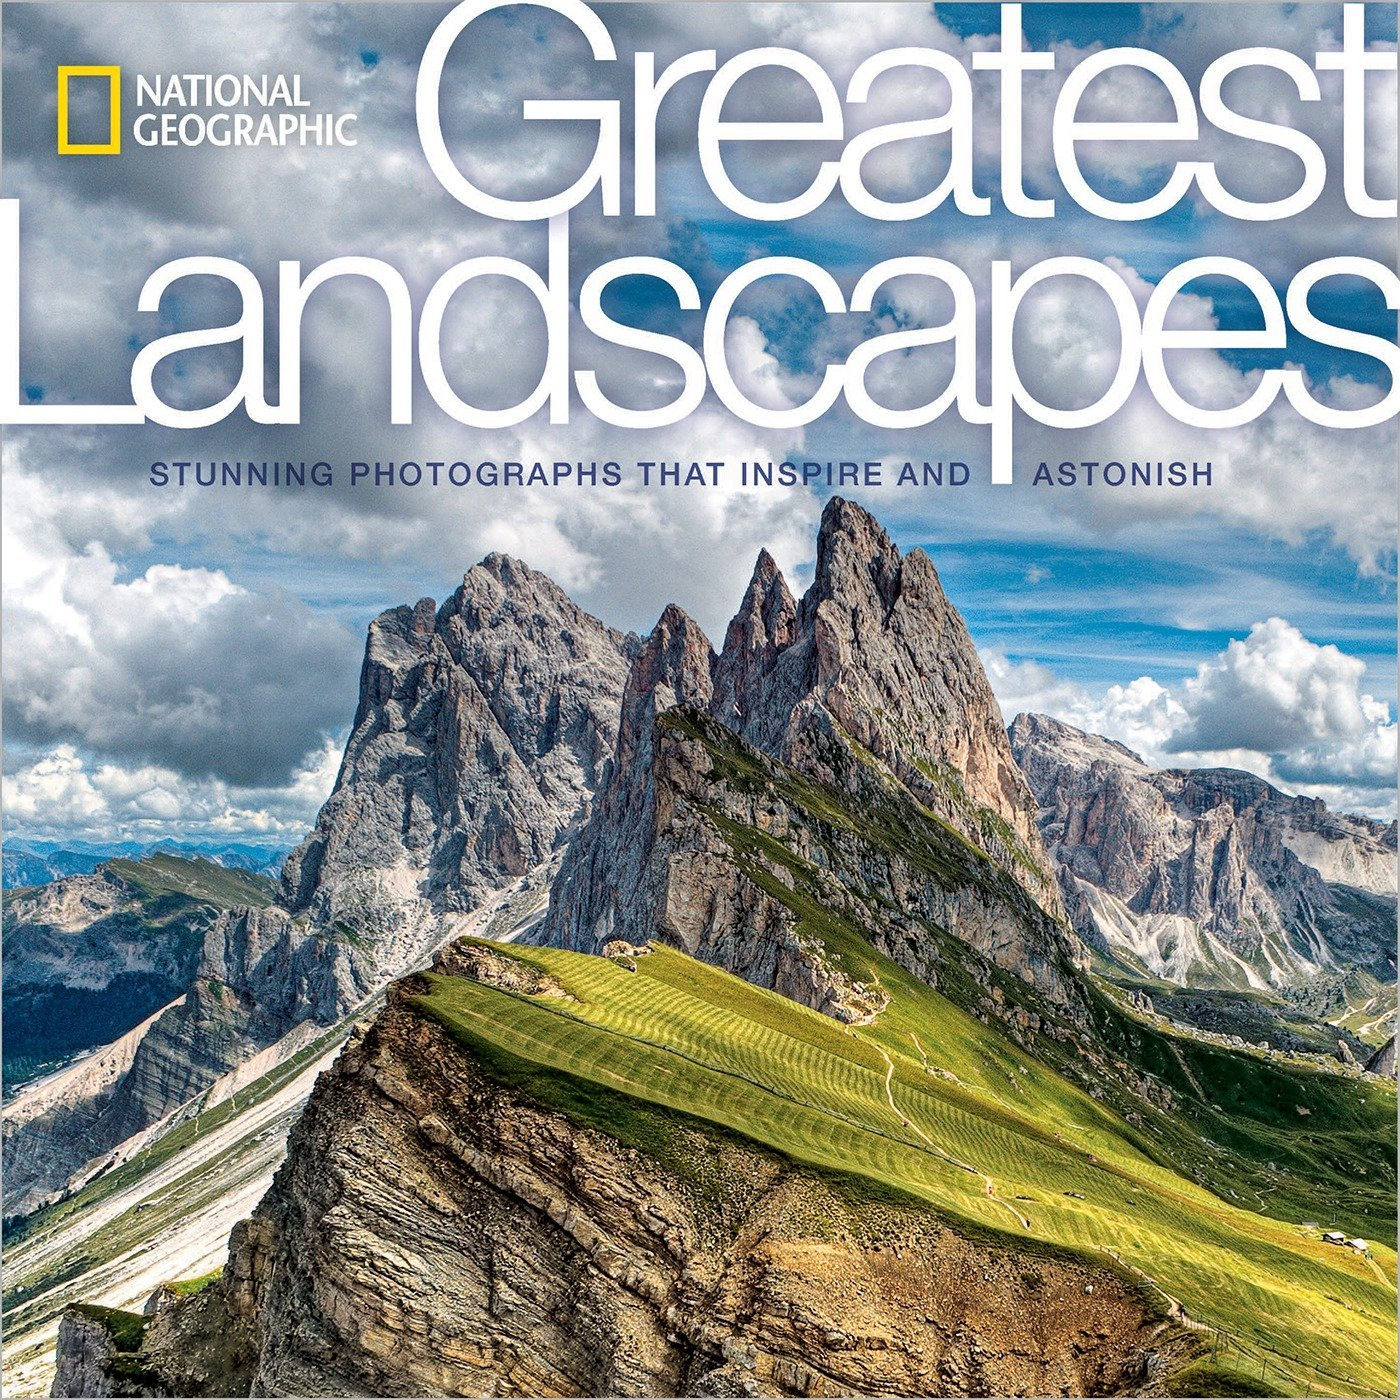 National Geographic Greatest Landscapes Stunning Photographs that Inspire and Astonish